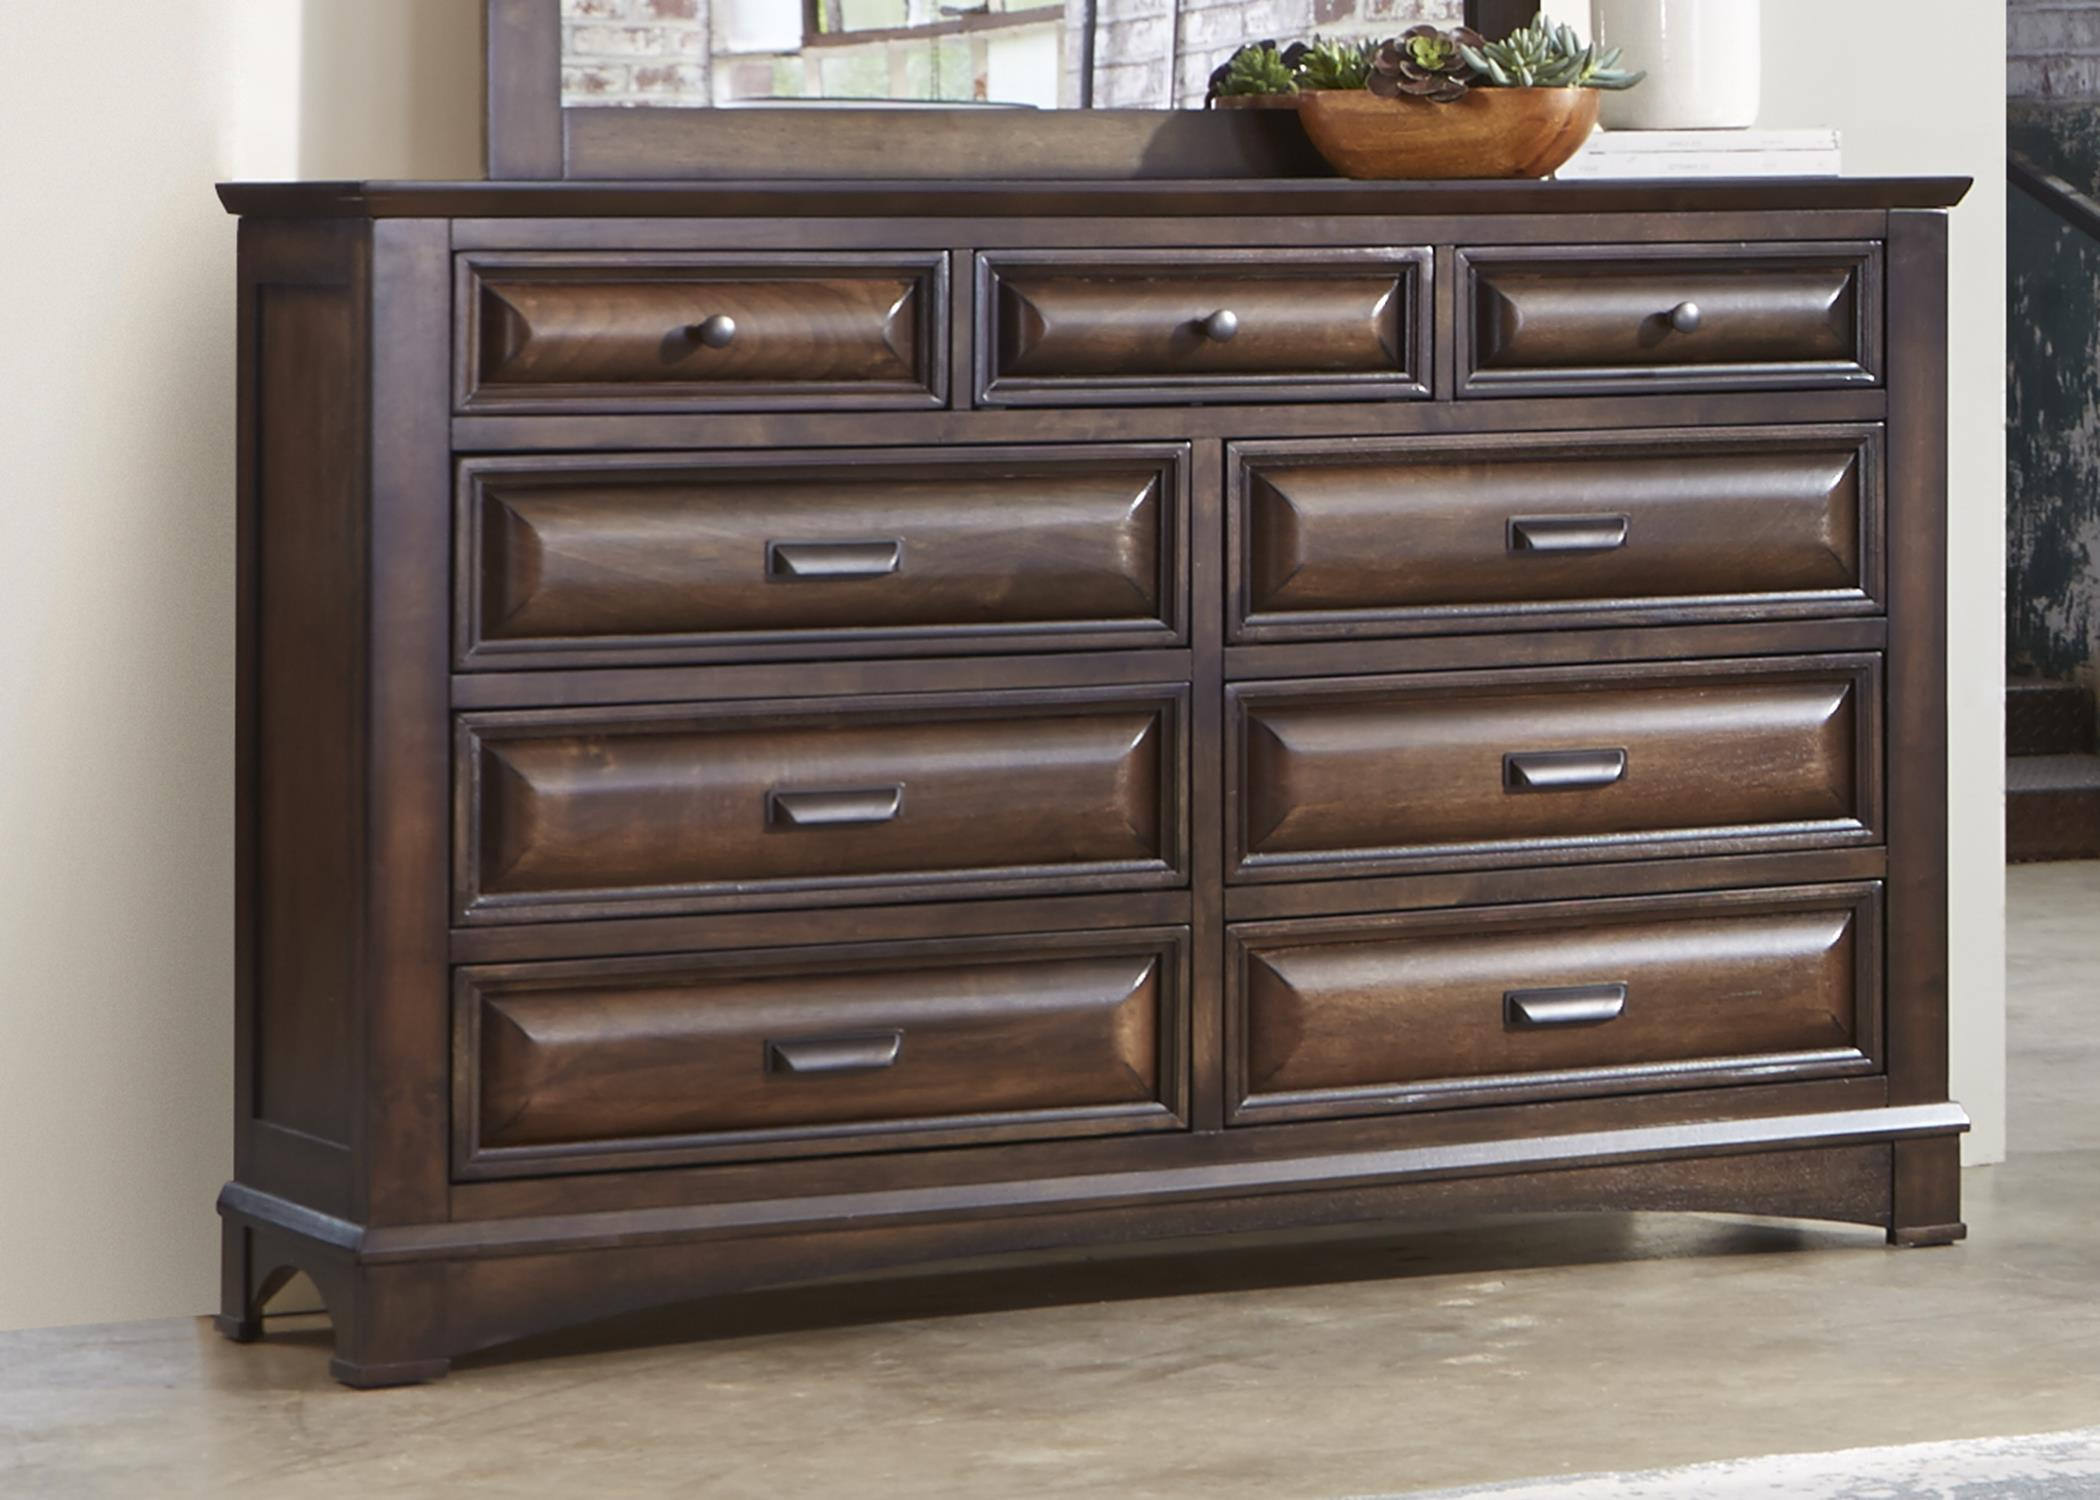 Liberty Furniture Knollwood 9 Drawer Dresser - Item Number: 258-BR31